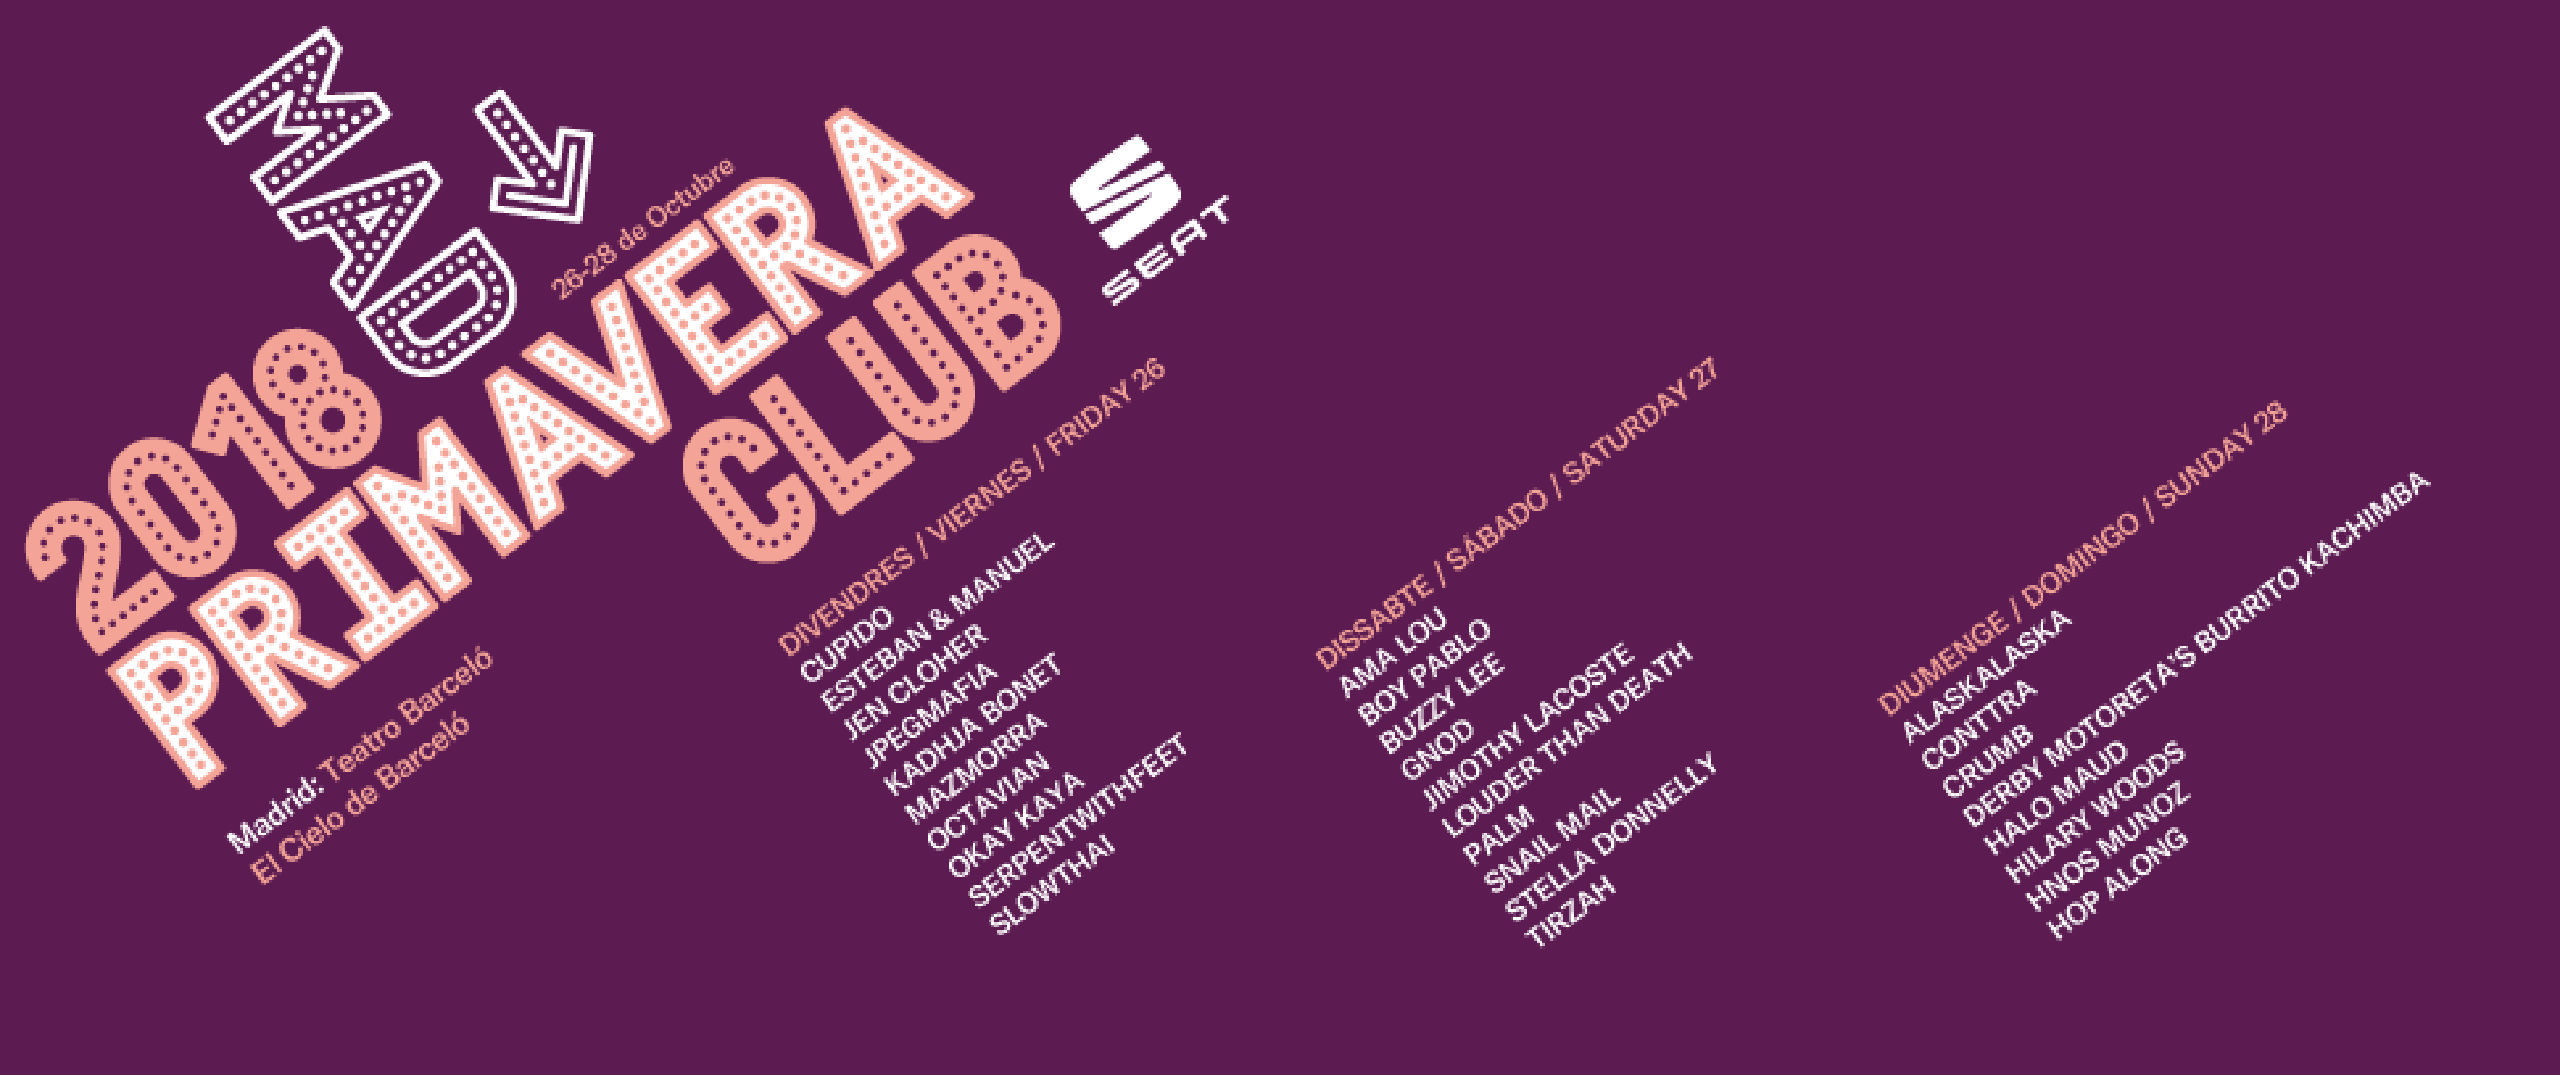 Primavera Club Madrid 2018